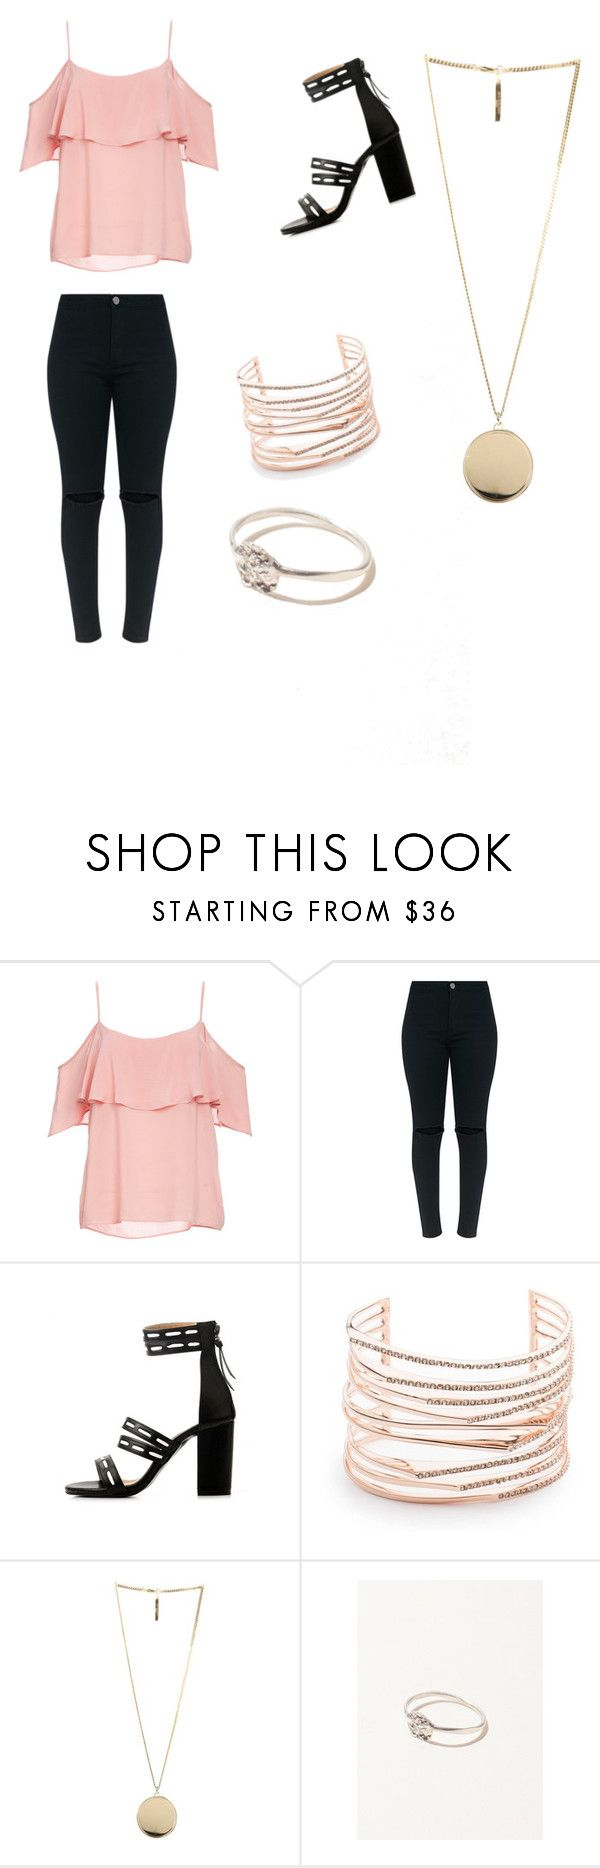 """Going to a cafe"" by gala001 on Polyvore featuring BB Dakota, Alexis Bittar and Givenchy"